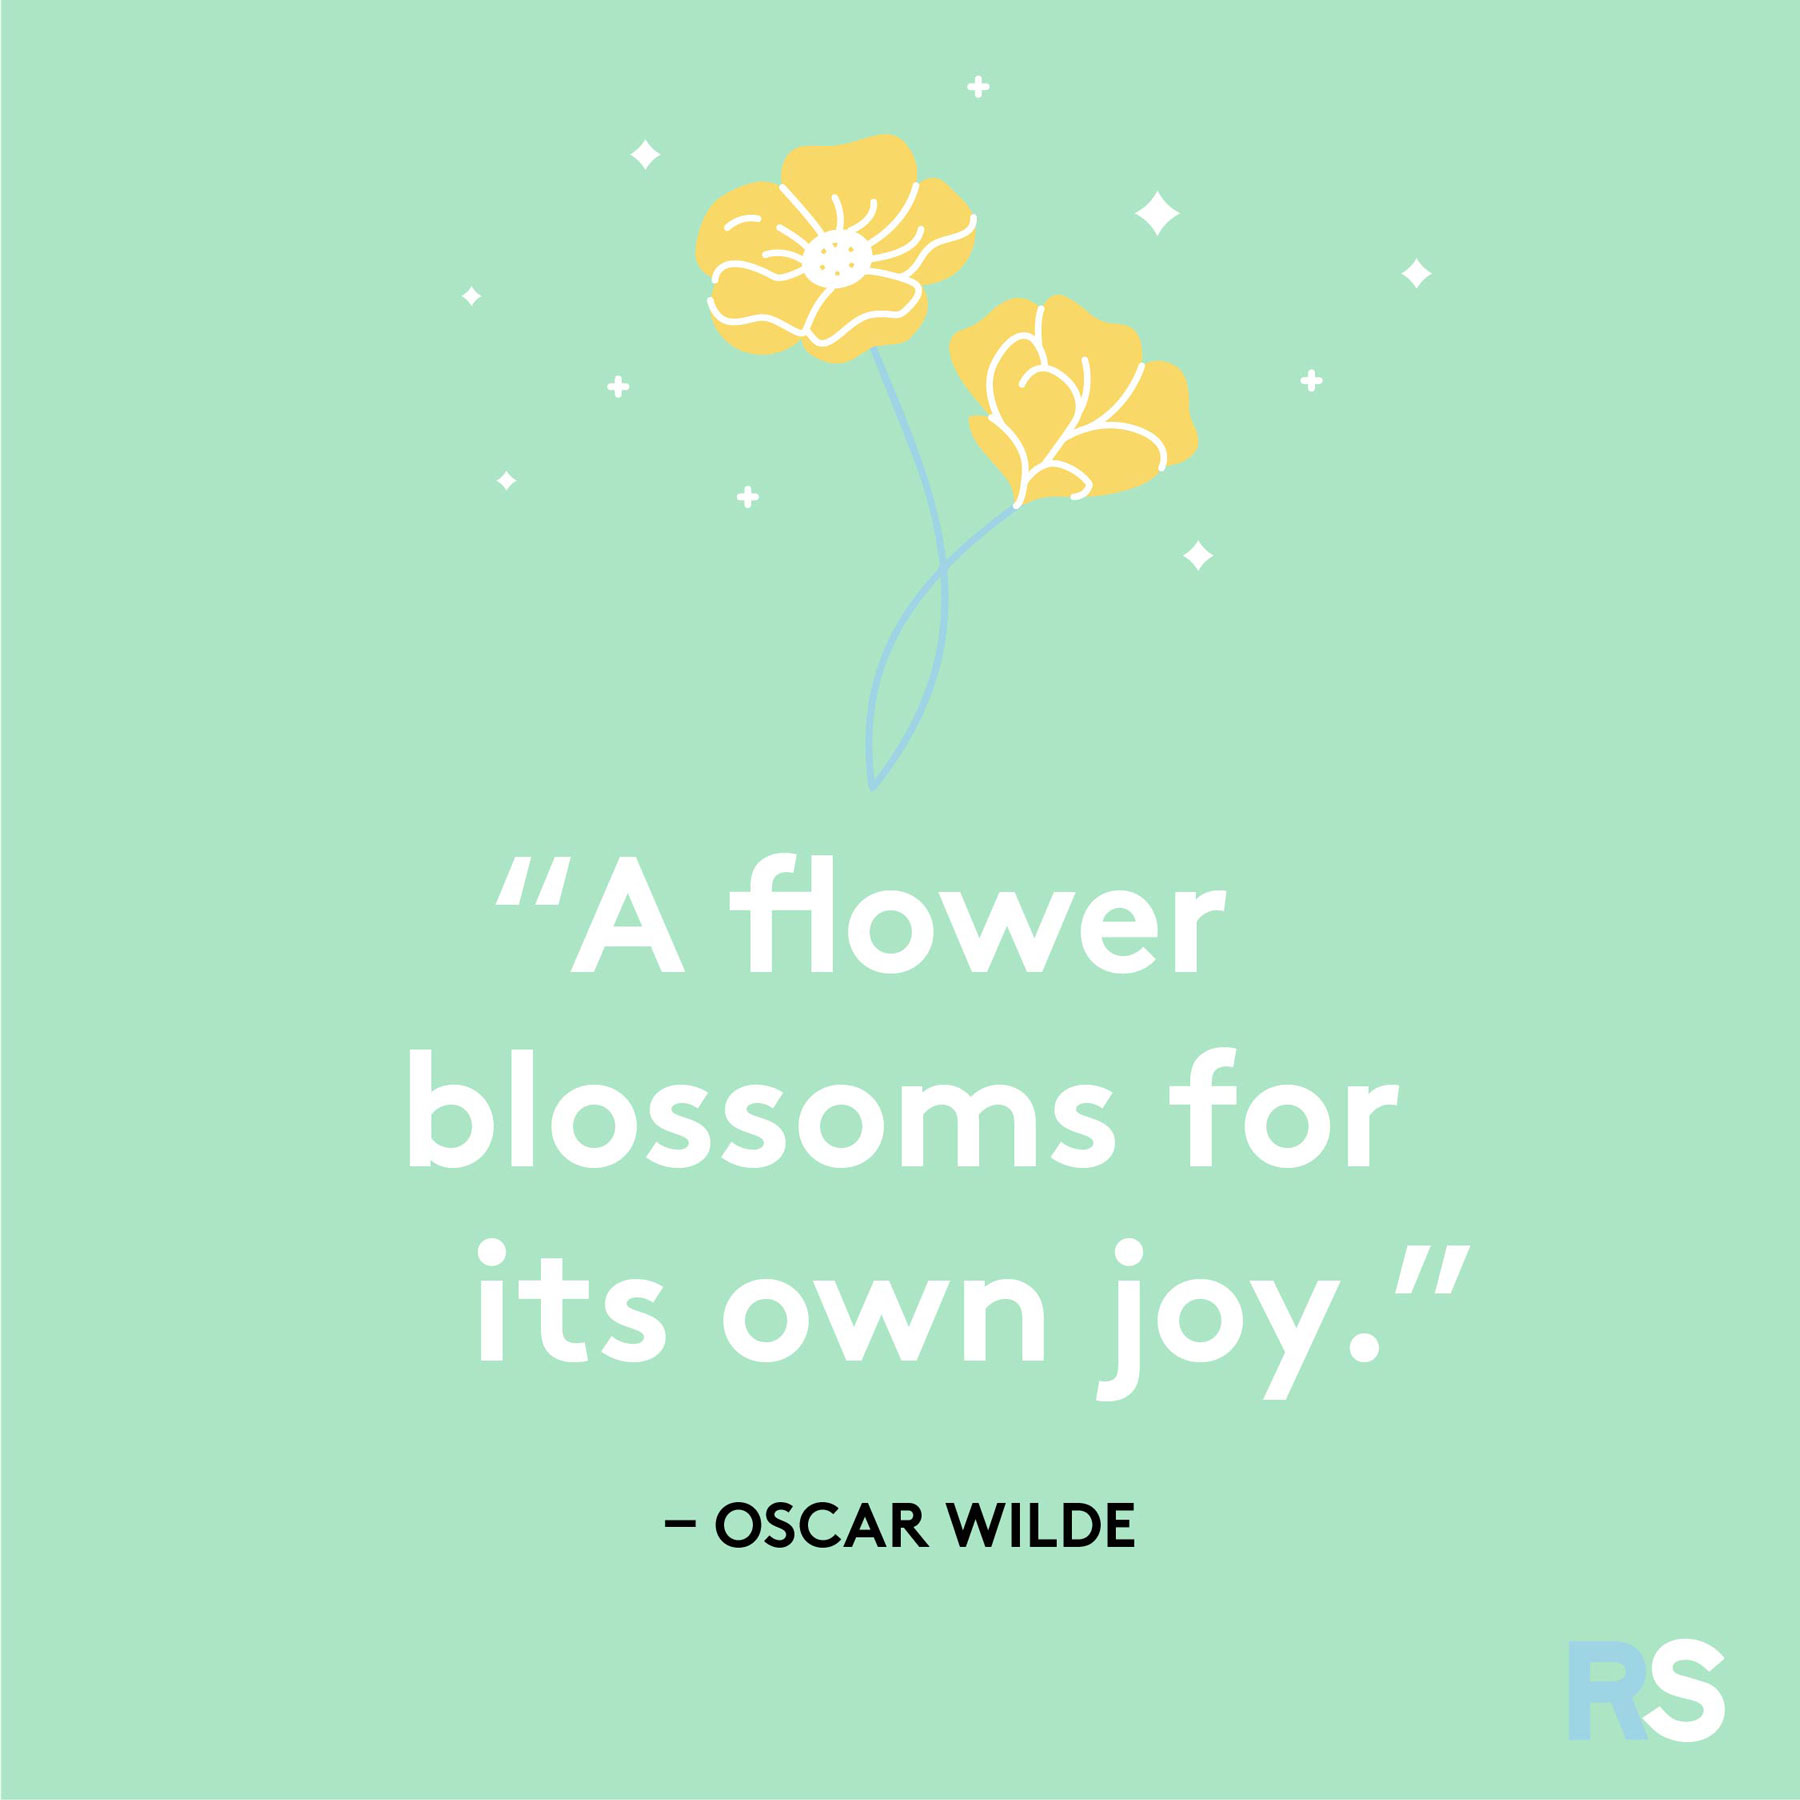 Easter quotes, captions, and messages - Oscar Wilde quote